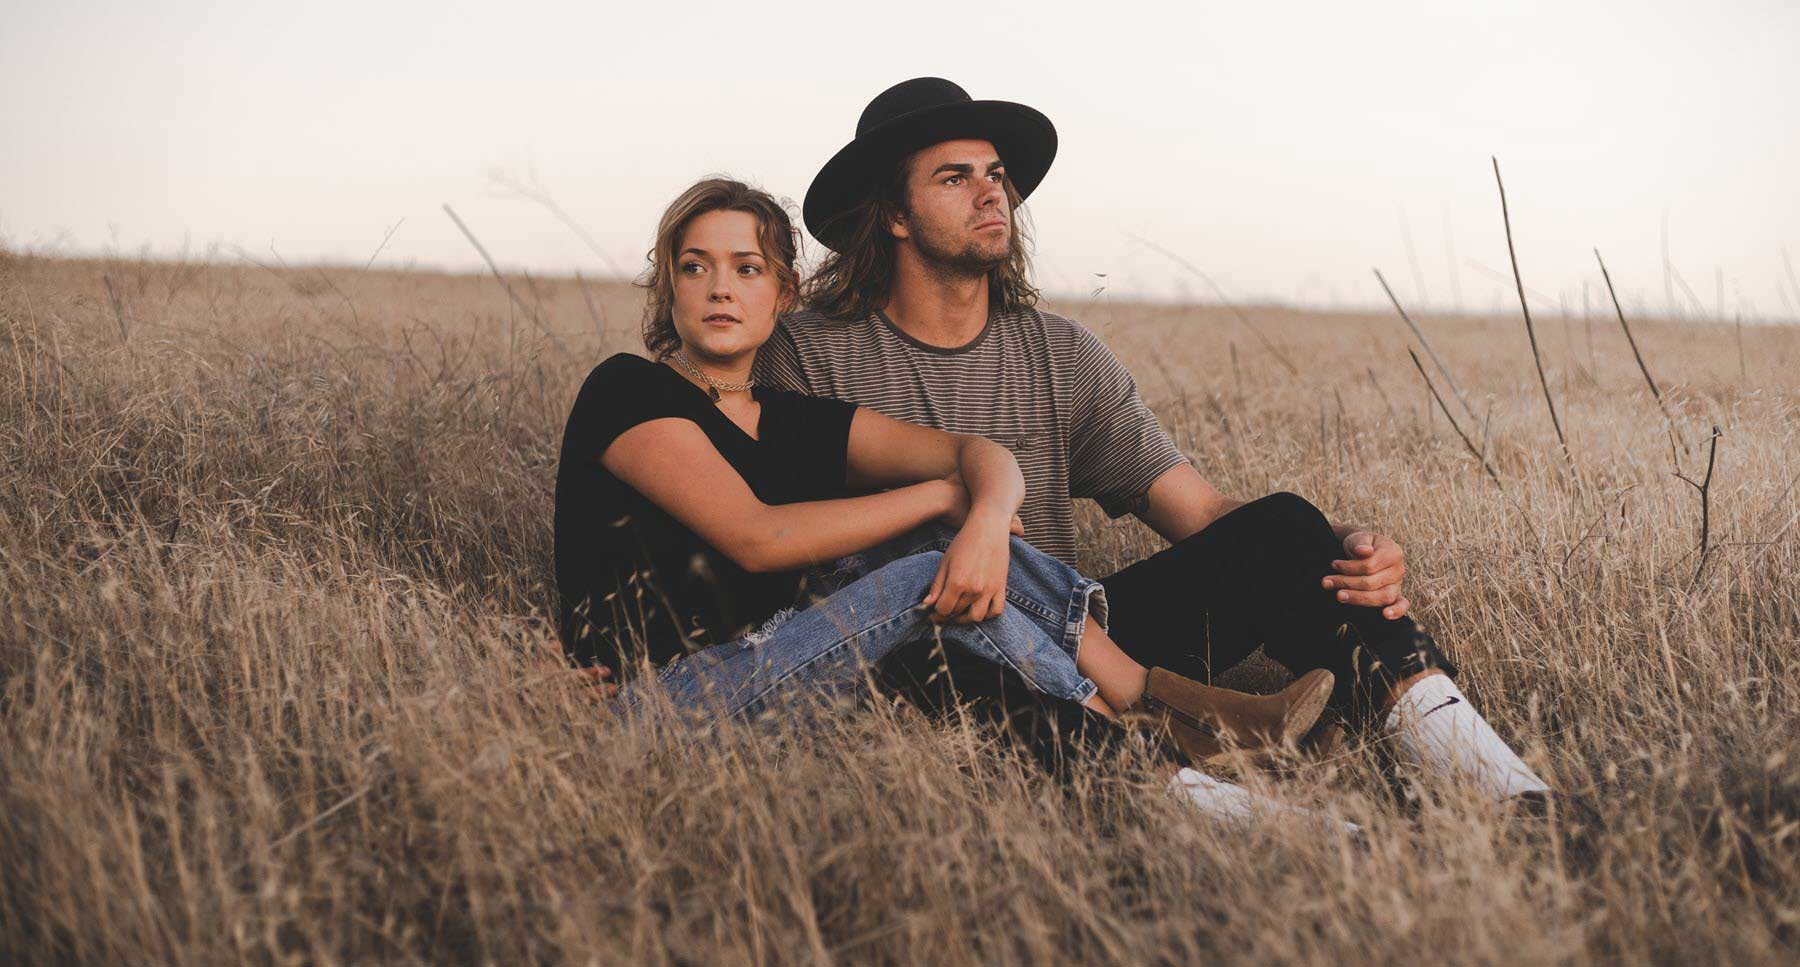 Is-Your-Partner-a-Narcissist-What-is-a-narcissist-Guy-and-girl-irritated-with-each-other-sitting-in-a-field-TheHopeLIne